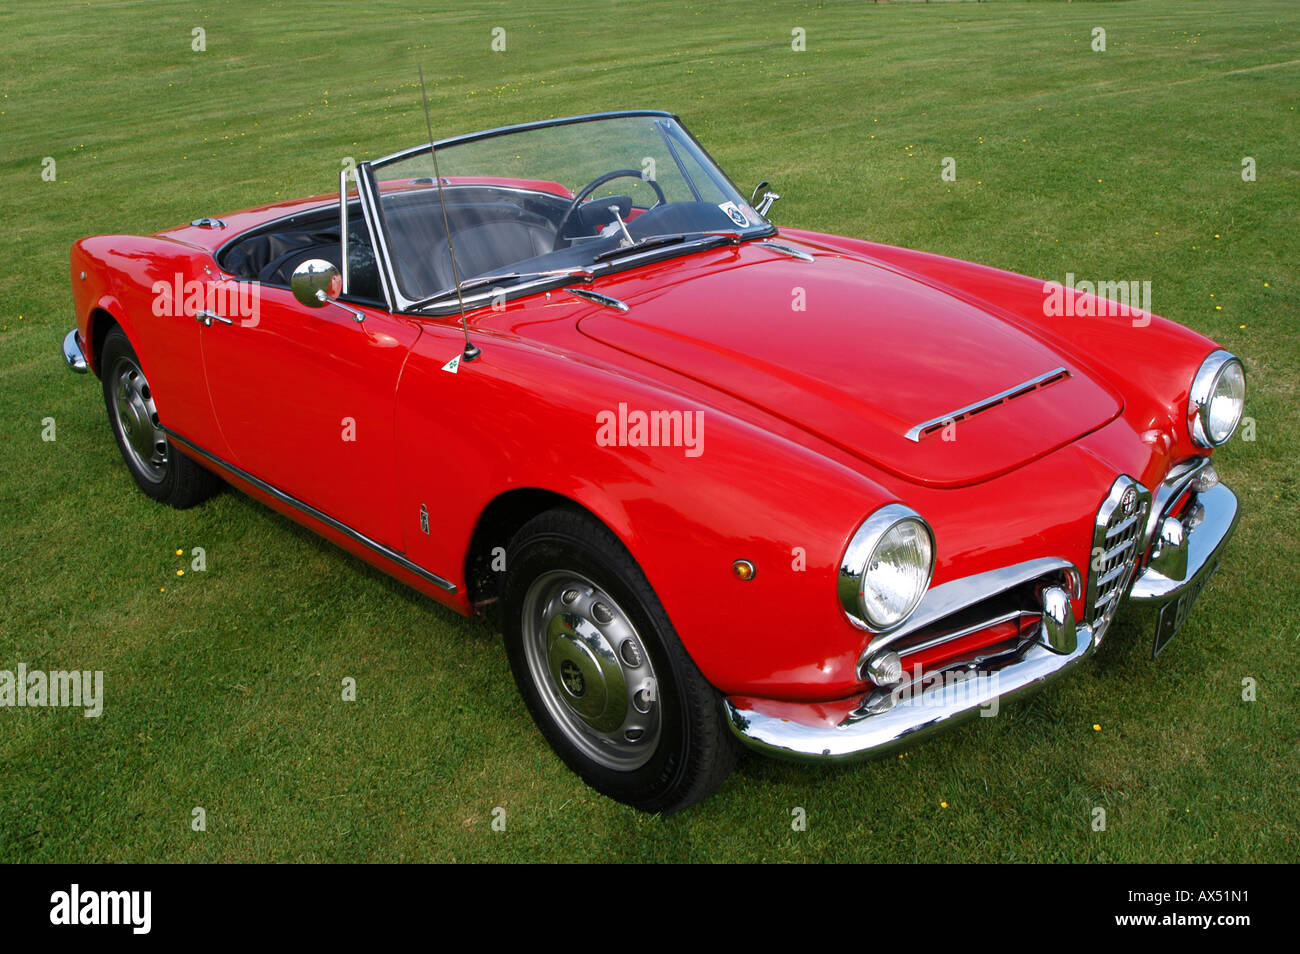 front detail of a red alfa romeo giulia 1964 1600cc classic sports stock photo royalty free. Black Bedroom Furniture Sets. Home Design Ideas